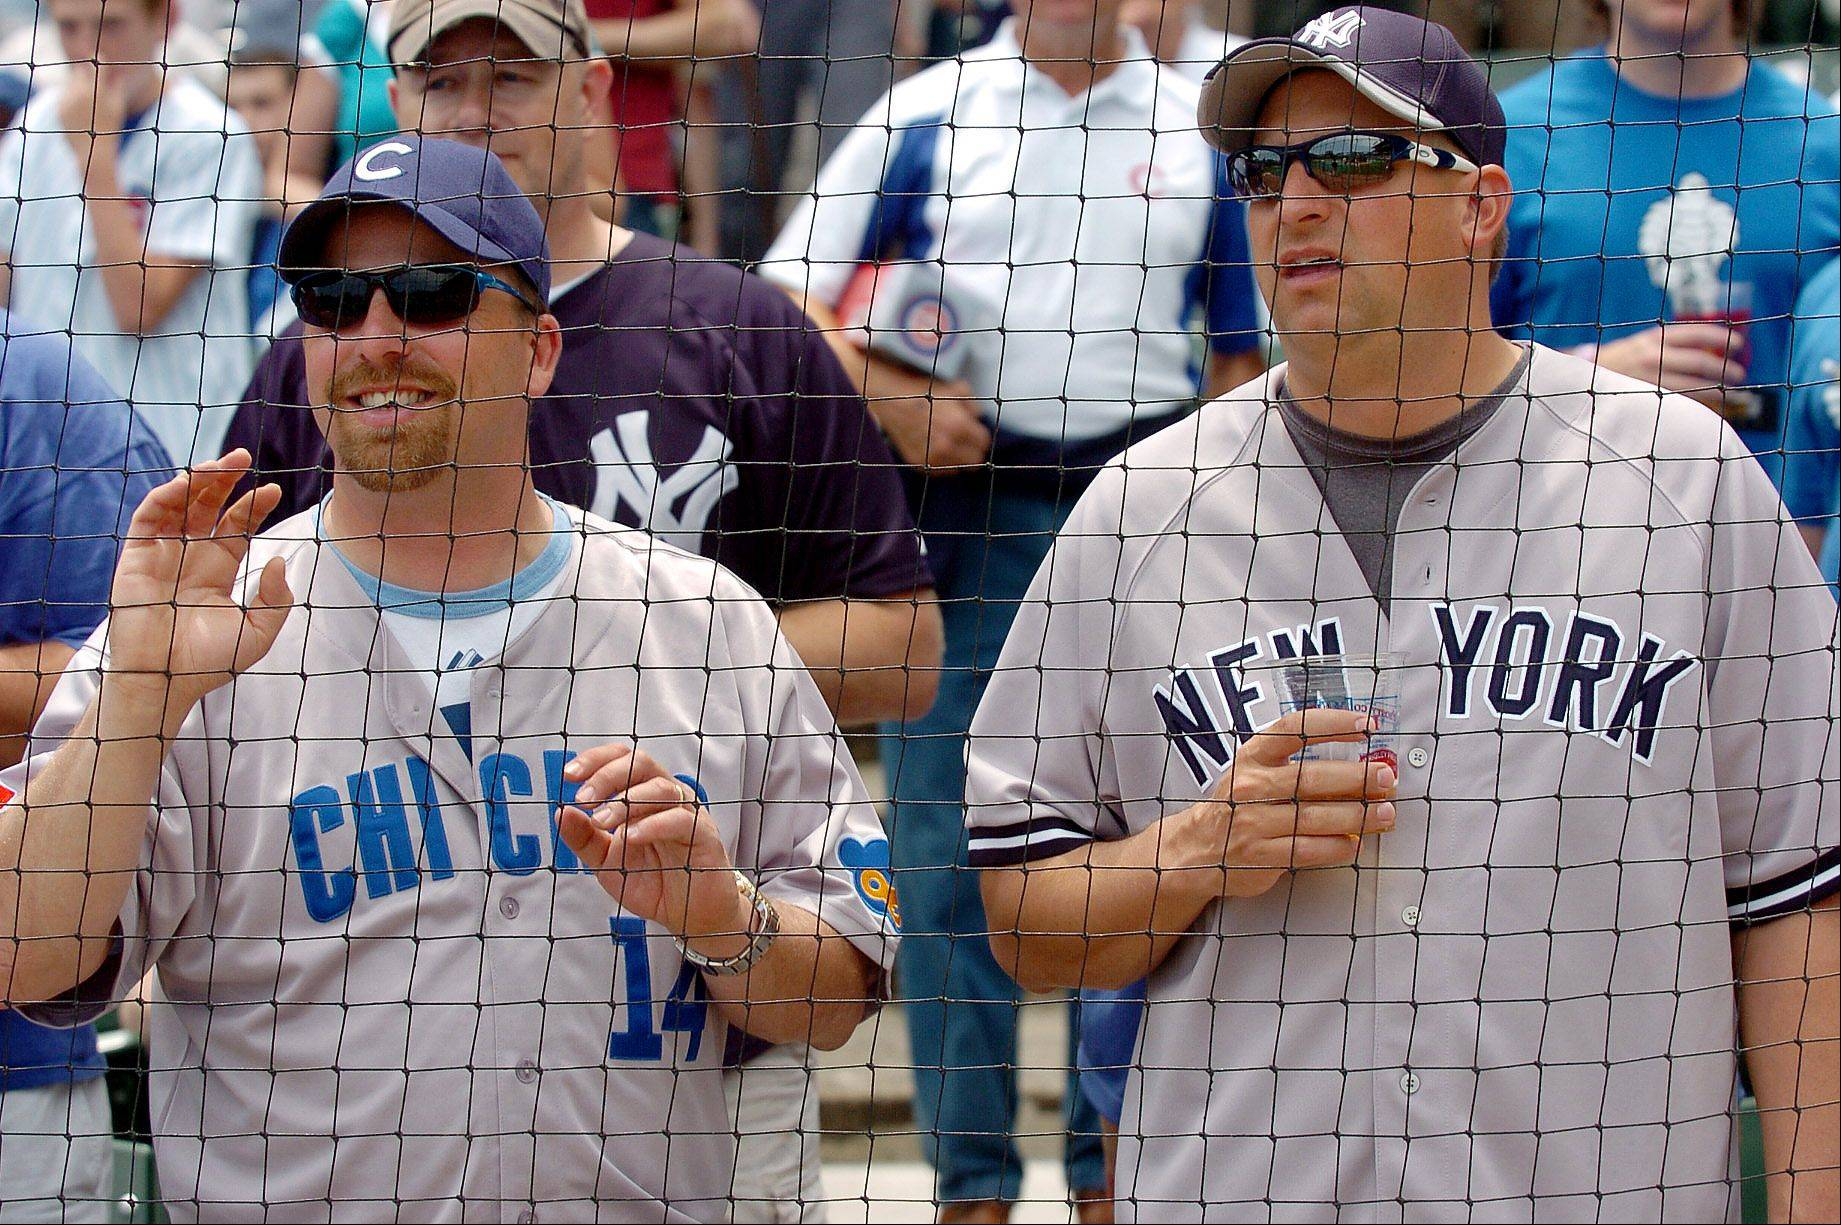 John Gidley, left, and Andy Sislo, both from Superior, Wisconsin, enjoy batting practice before the game. The tickets to the game was an early Father's Day gift from their wives.